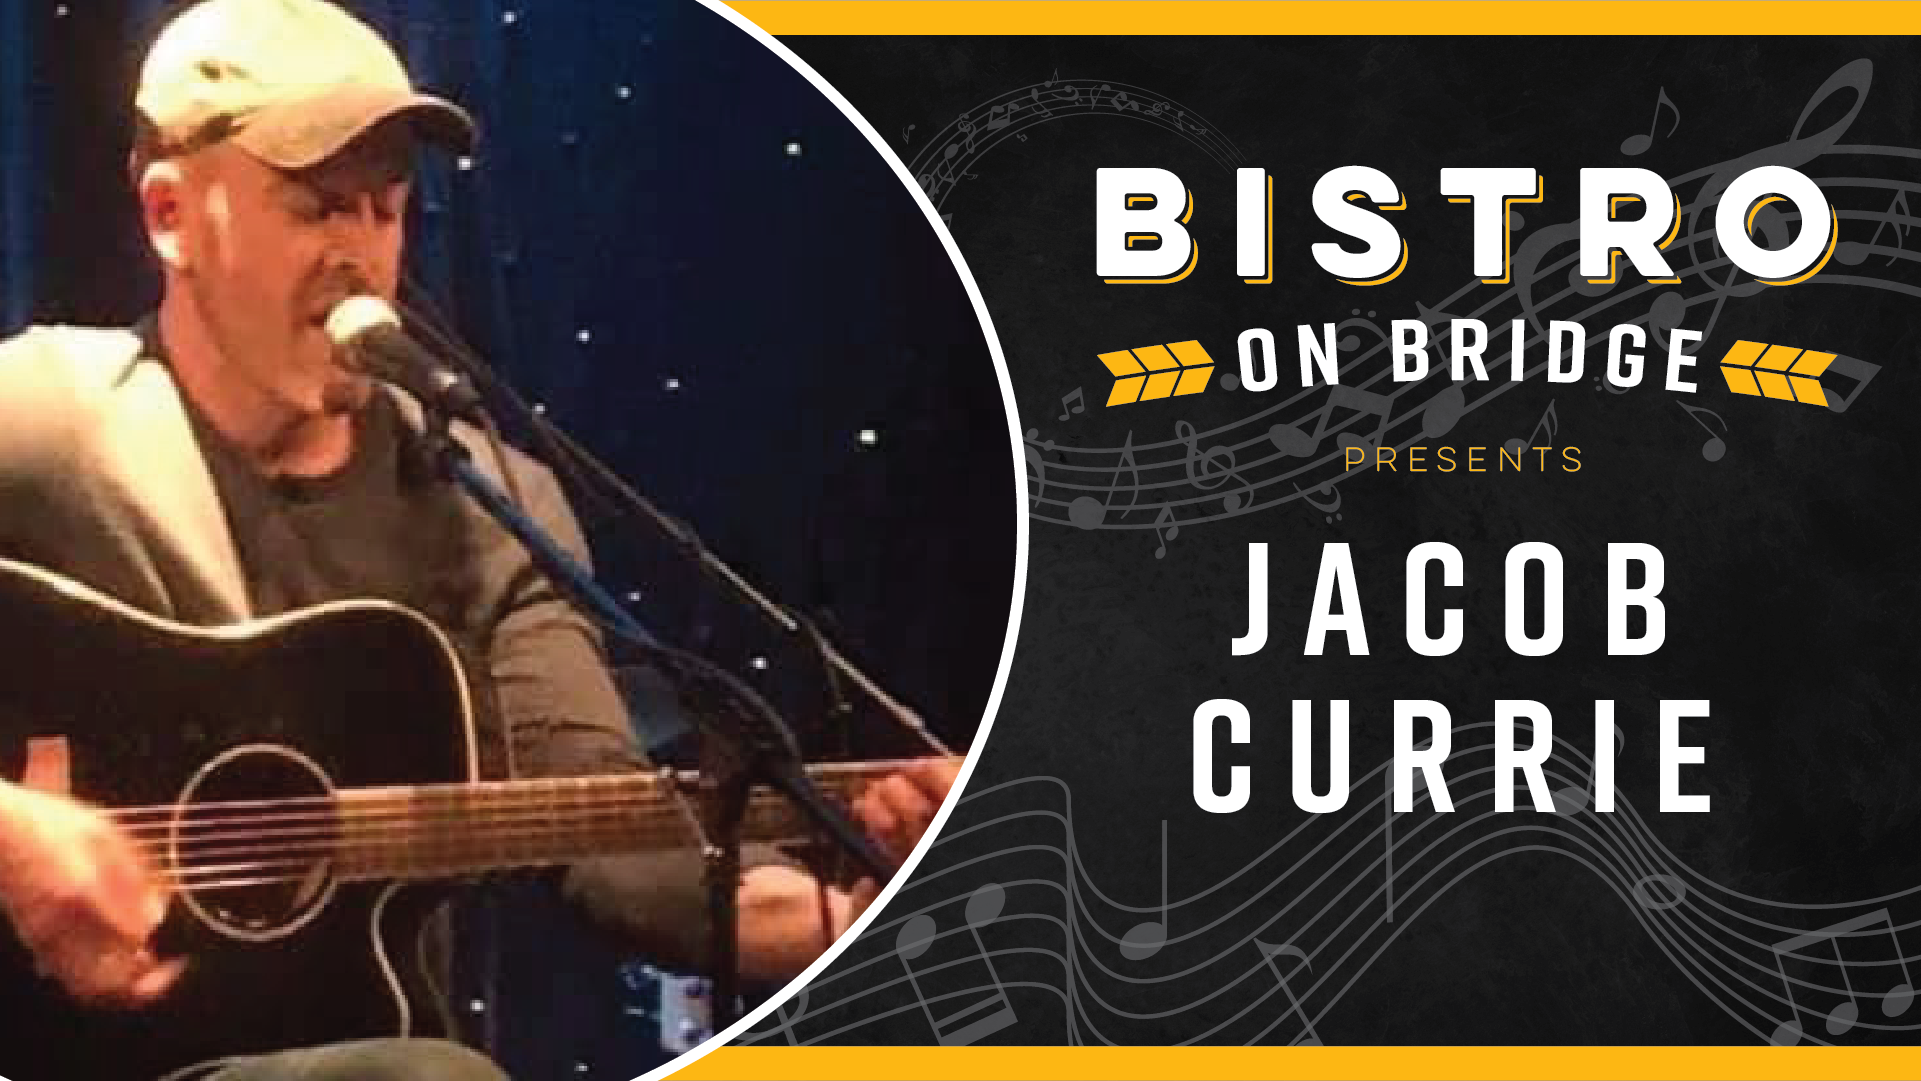 Jacob Currie - Bistro